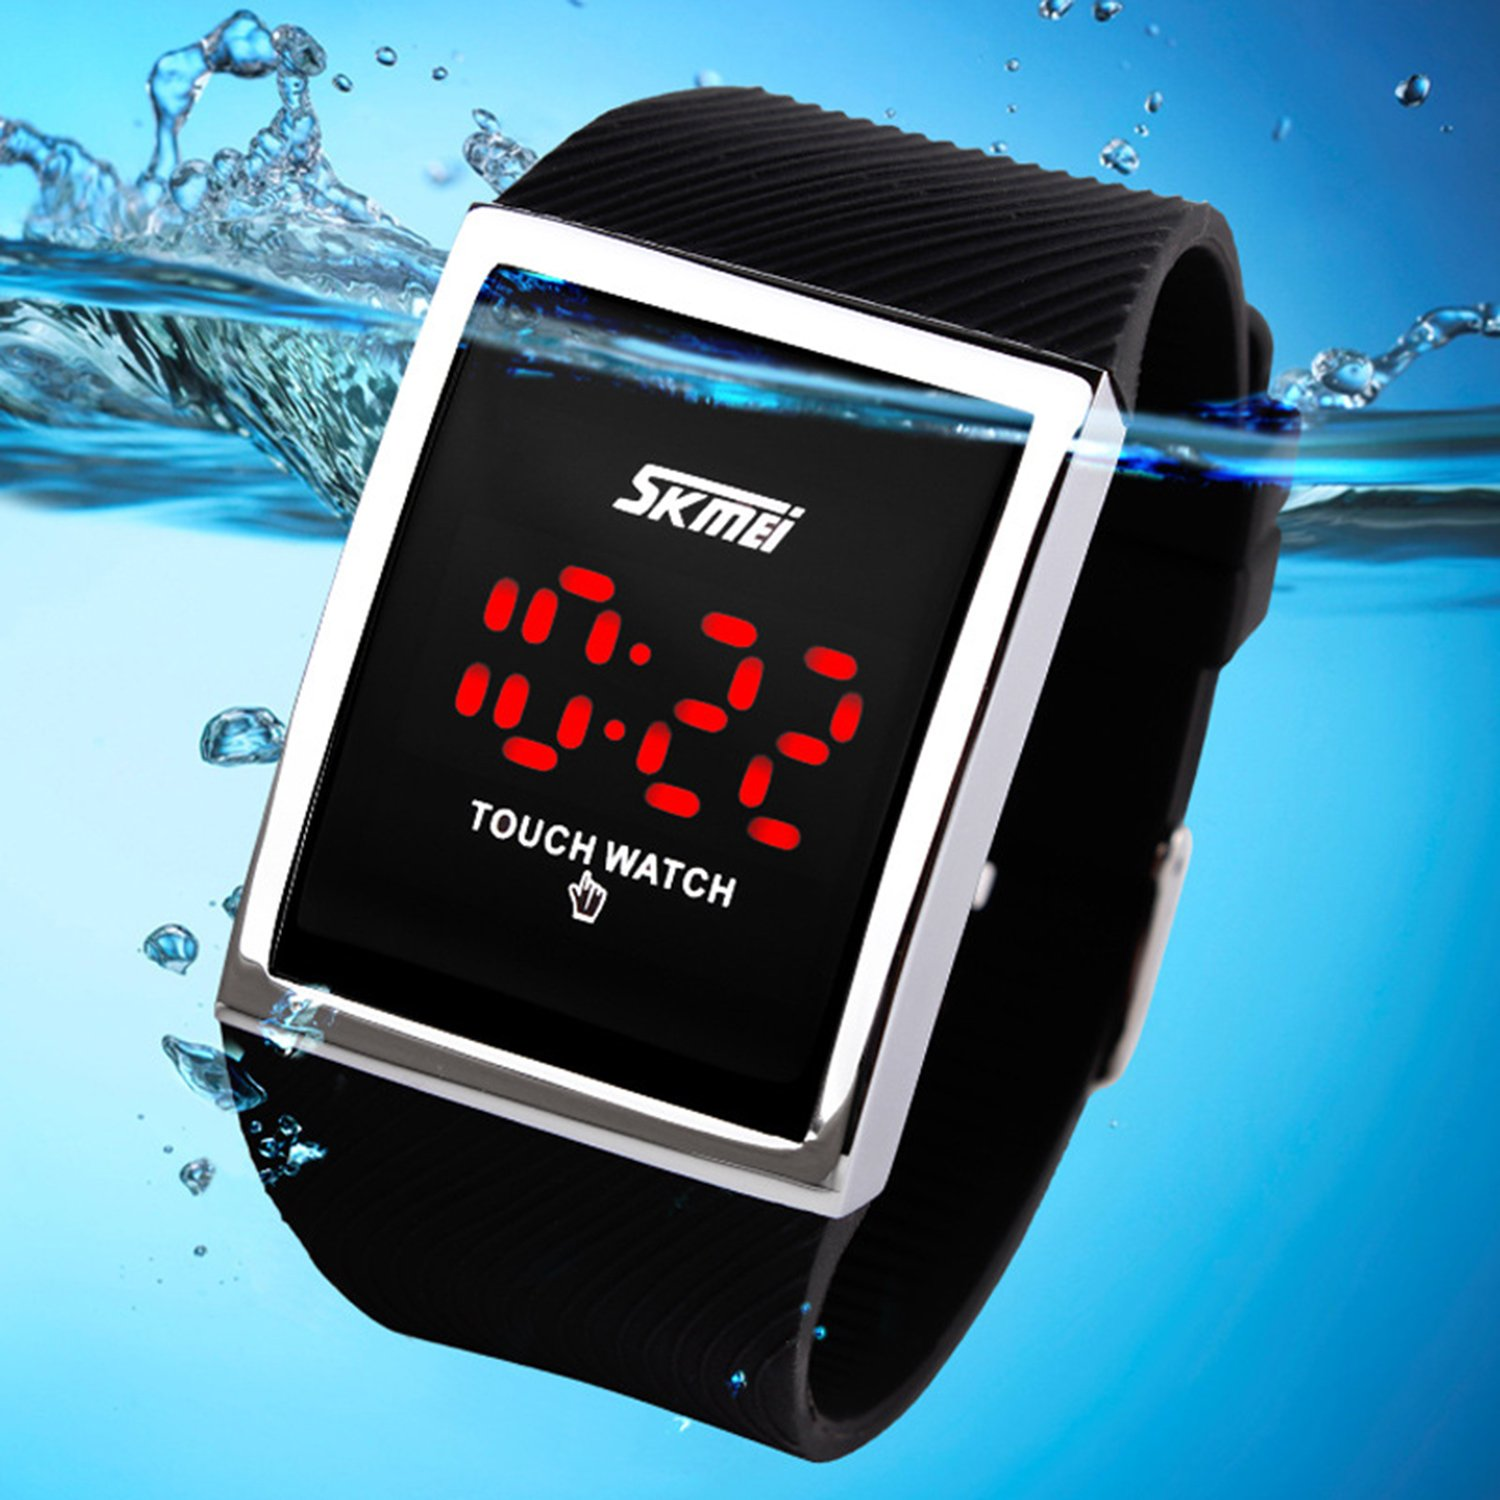 Touch Screen Outdoor Sports Black Watch with LED, Digital for Boys Girls, Above 10 Years Old Kids by FIZILI (Image #3)